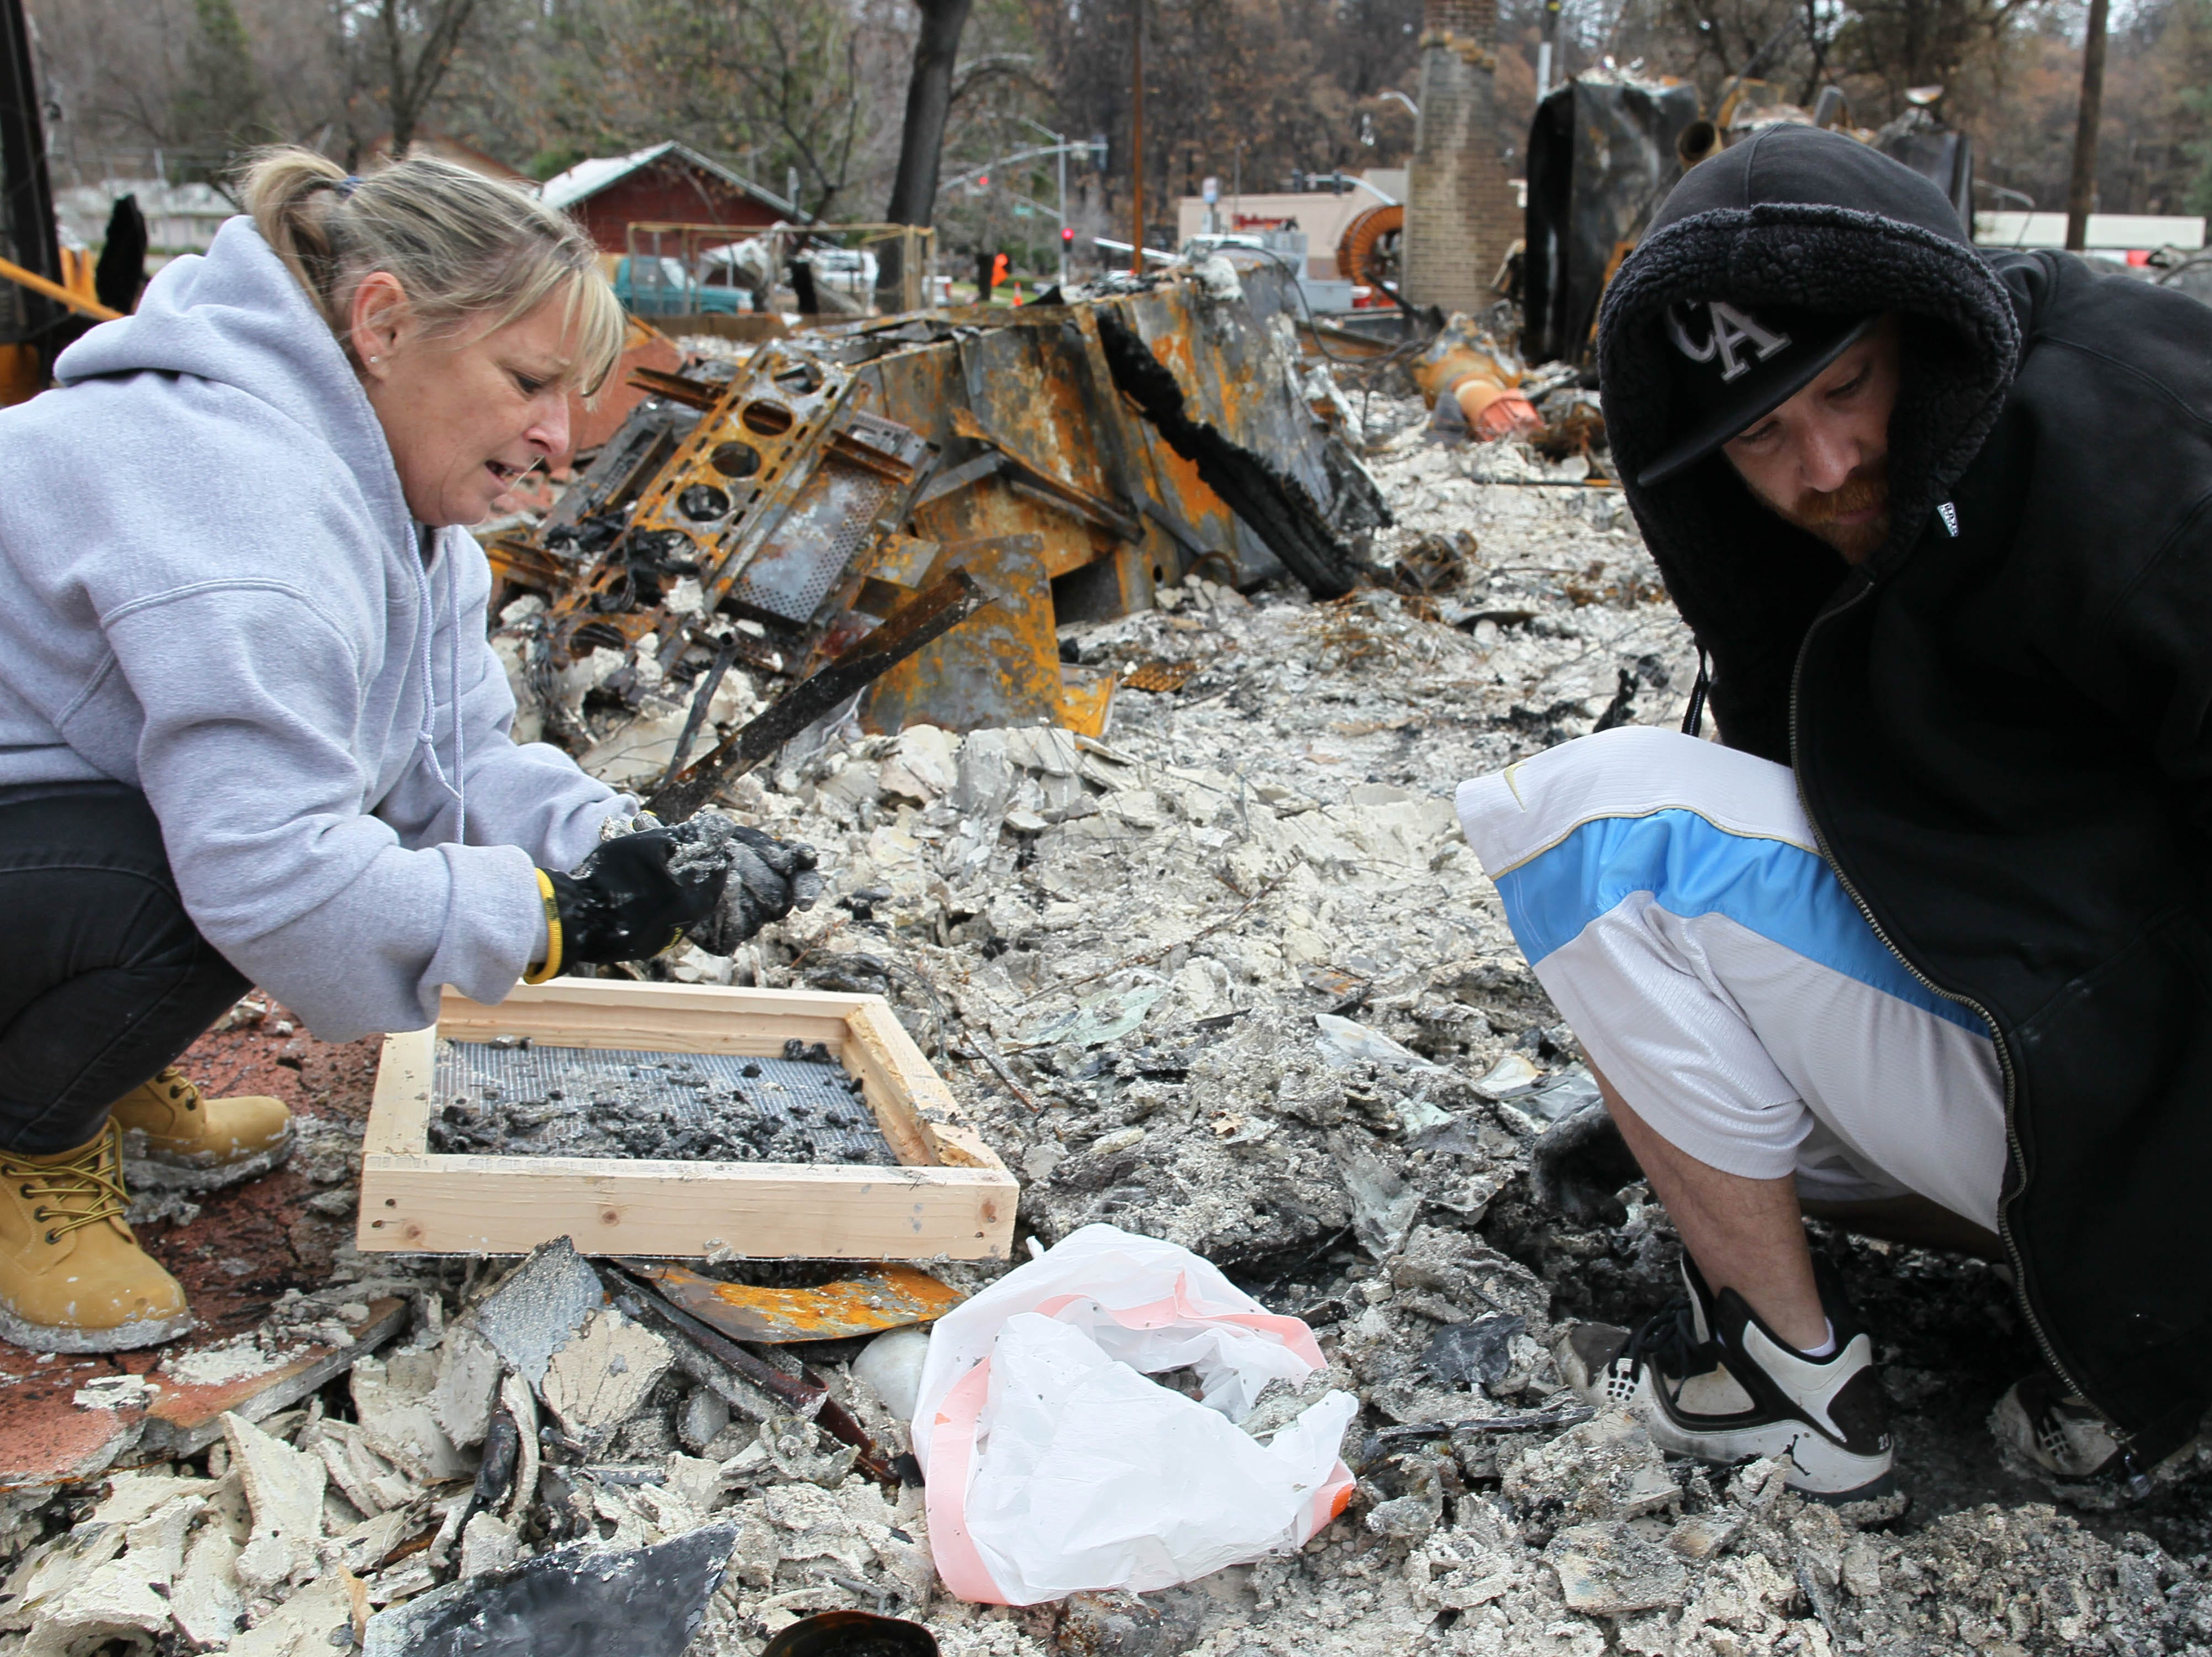 Tina Torres, left, and her daughter's friend, Brandon Duensing, sift through  debris of Torres' home, hoping to salvage items.  It's the first day she and other residents were allowed to return to their home sites since they were evacuated during the Camp Fire on Nov. 8, 2018.